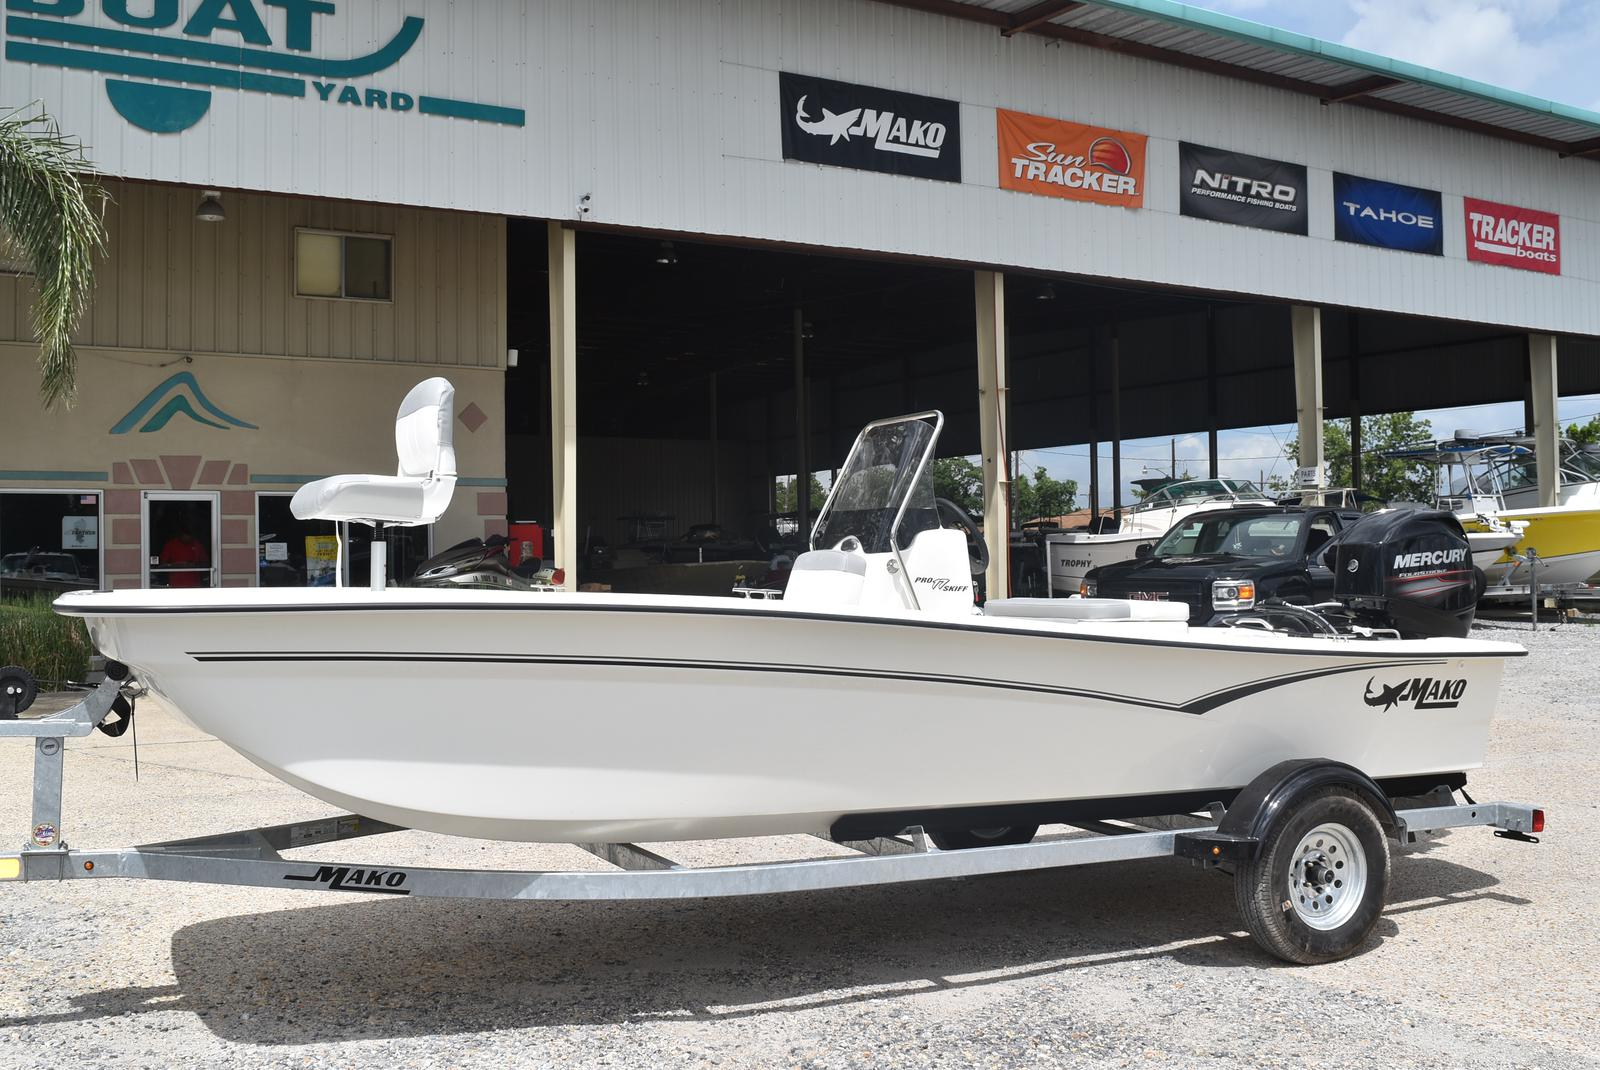 2020 Mako boat for sale, model of the boat is Pro Skiff 17, 75 ELPT & Image # 129 of 702